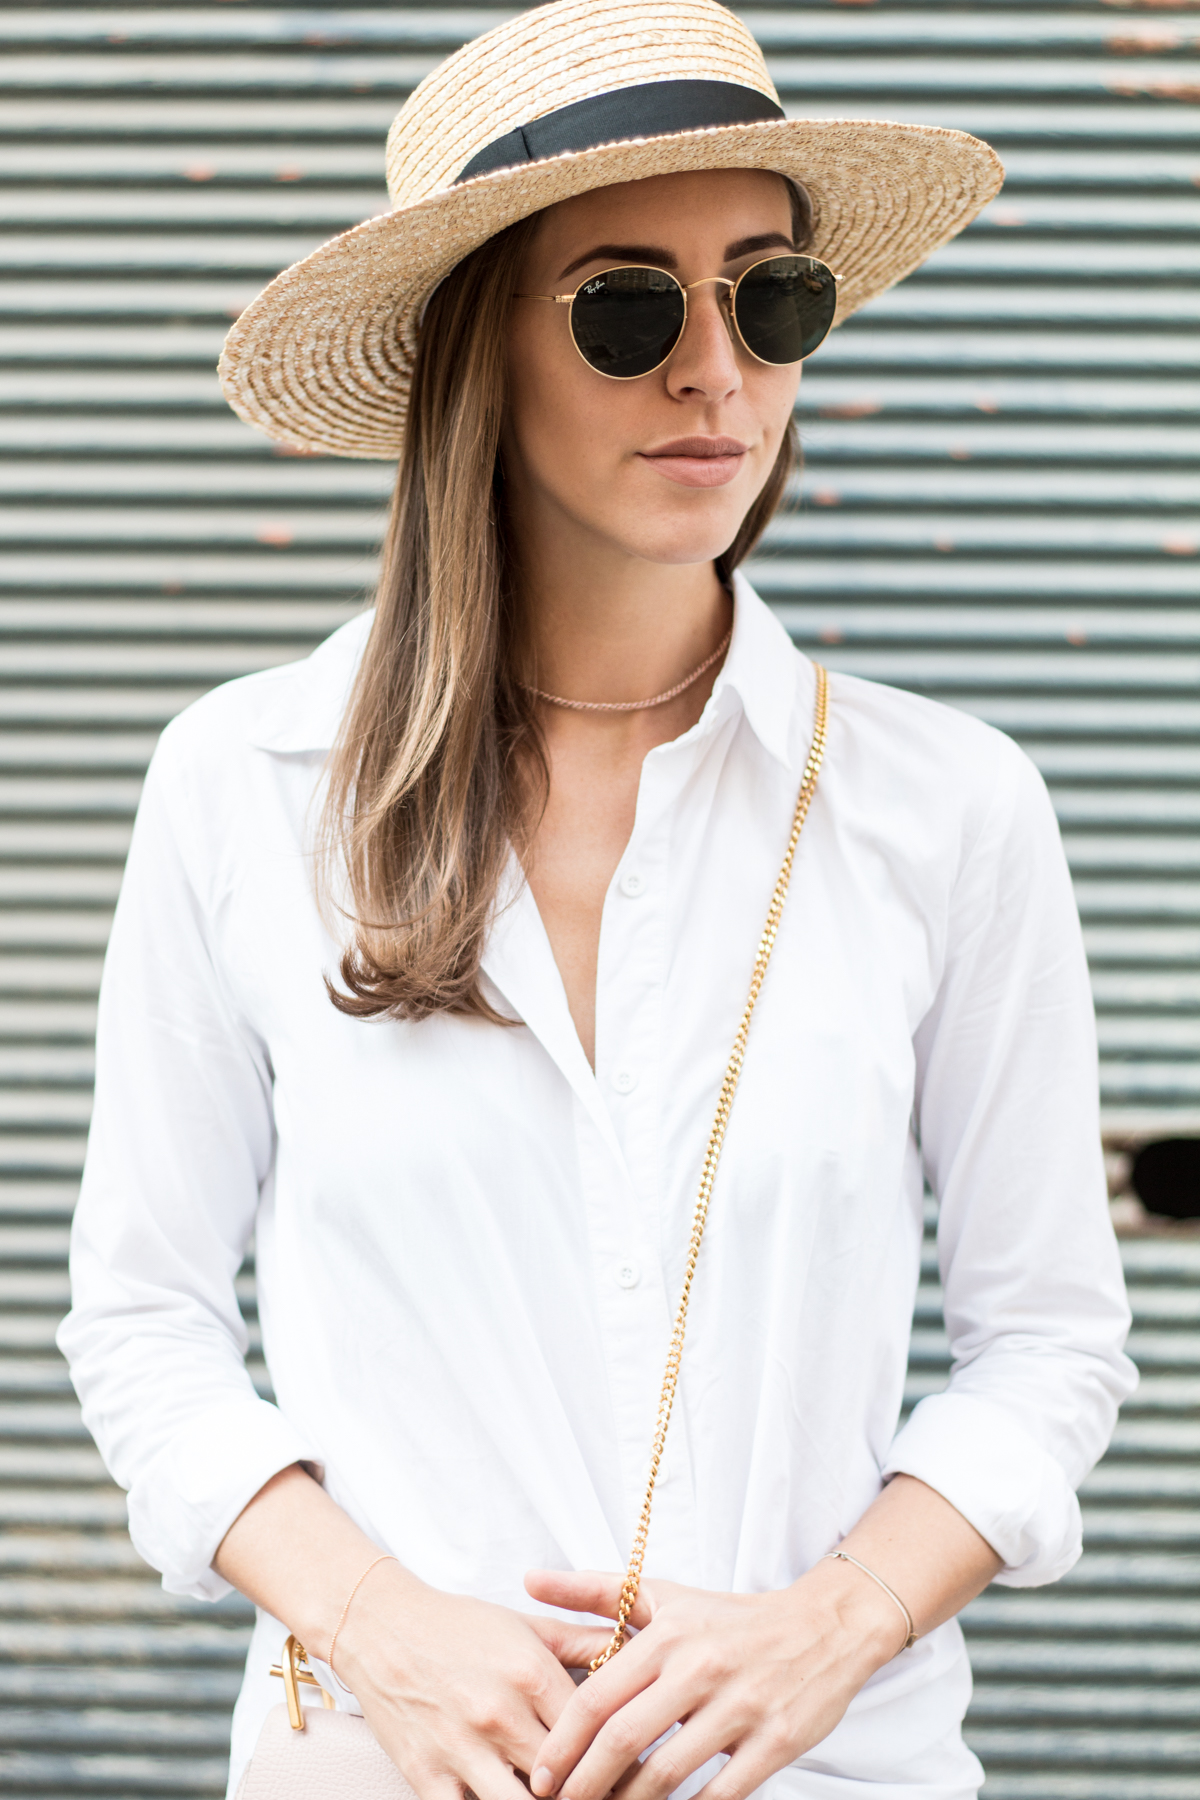 Editor's Pick: The Boater | Love Daily Dose